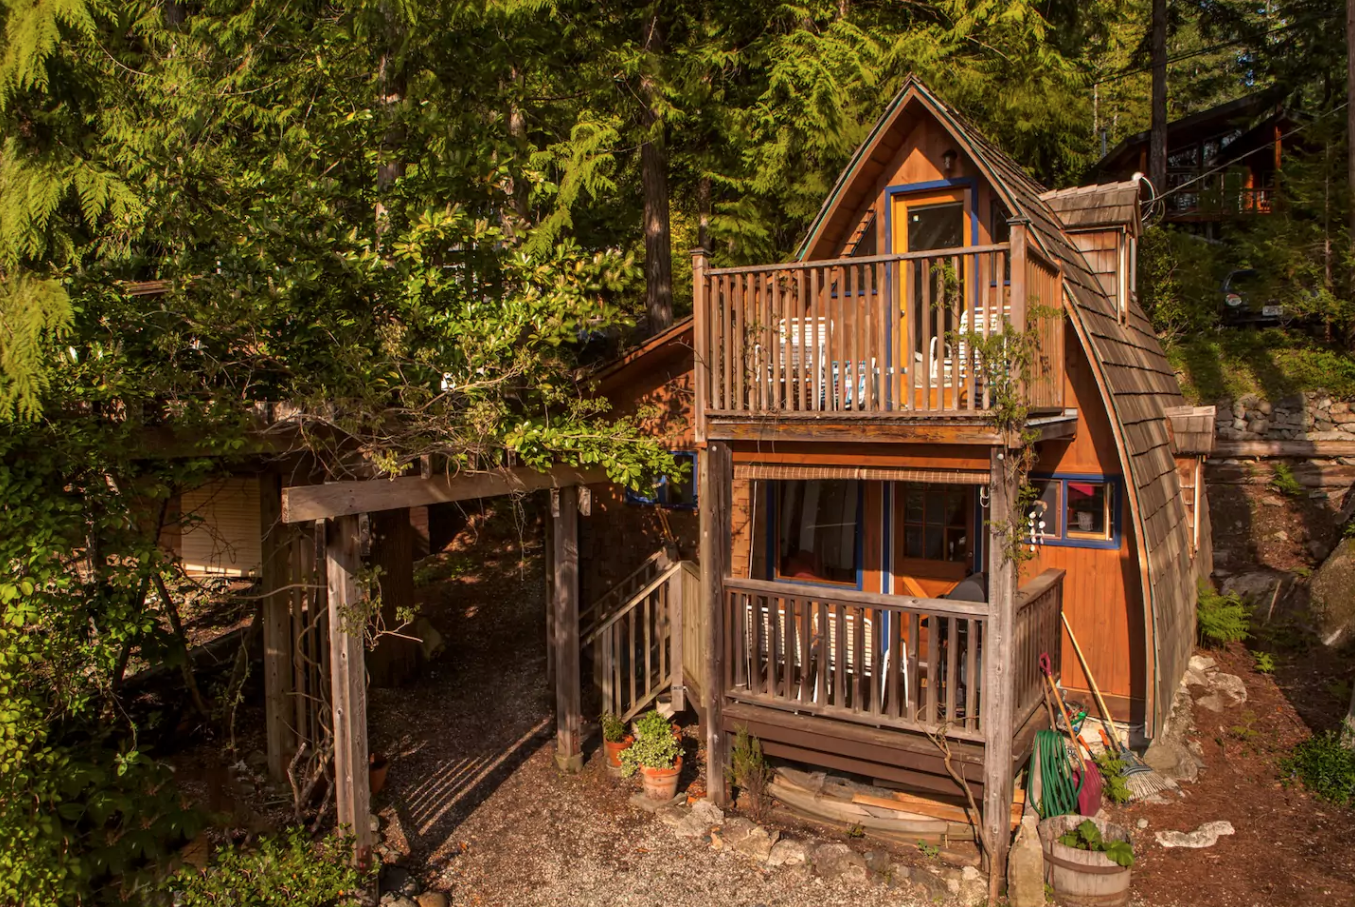 Exterior, Shingles Roof Material, Cabin Building Type, A-Frame RoofLine, Wood Siding Material, and Curved RoofLine Airbnb's fourth  Photo 10 of 12 in 11 A-Frame Cabins For A-Grade Getaways